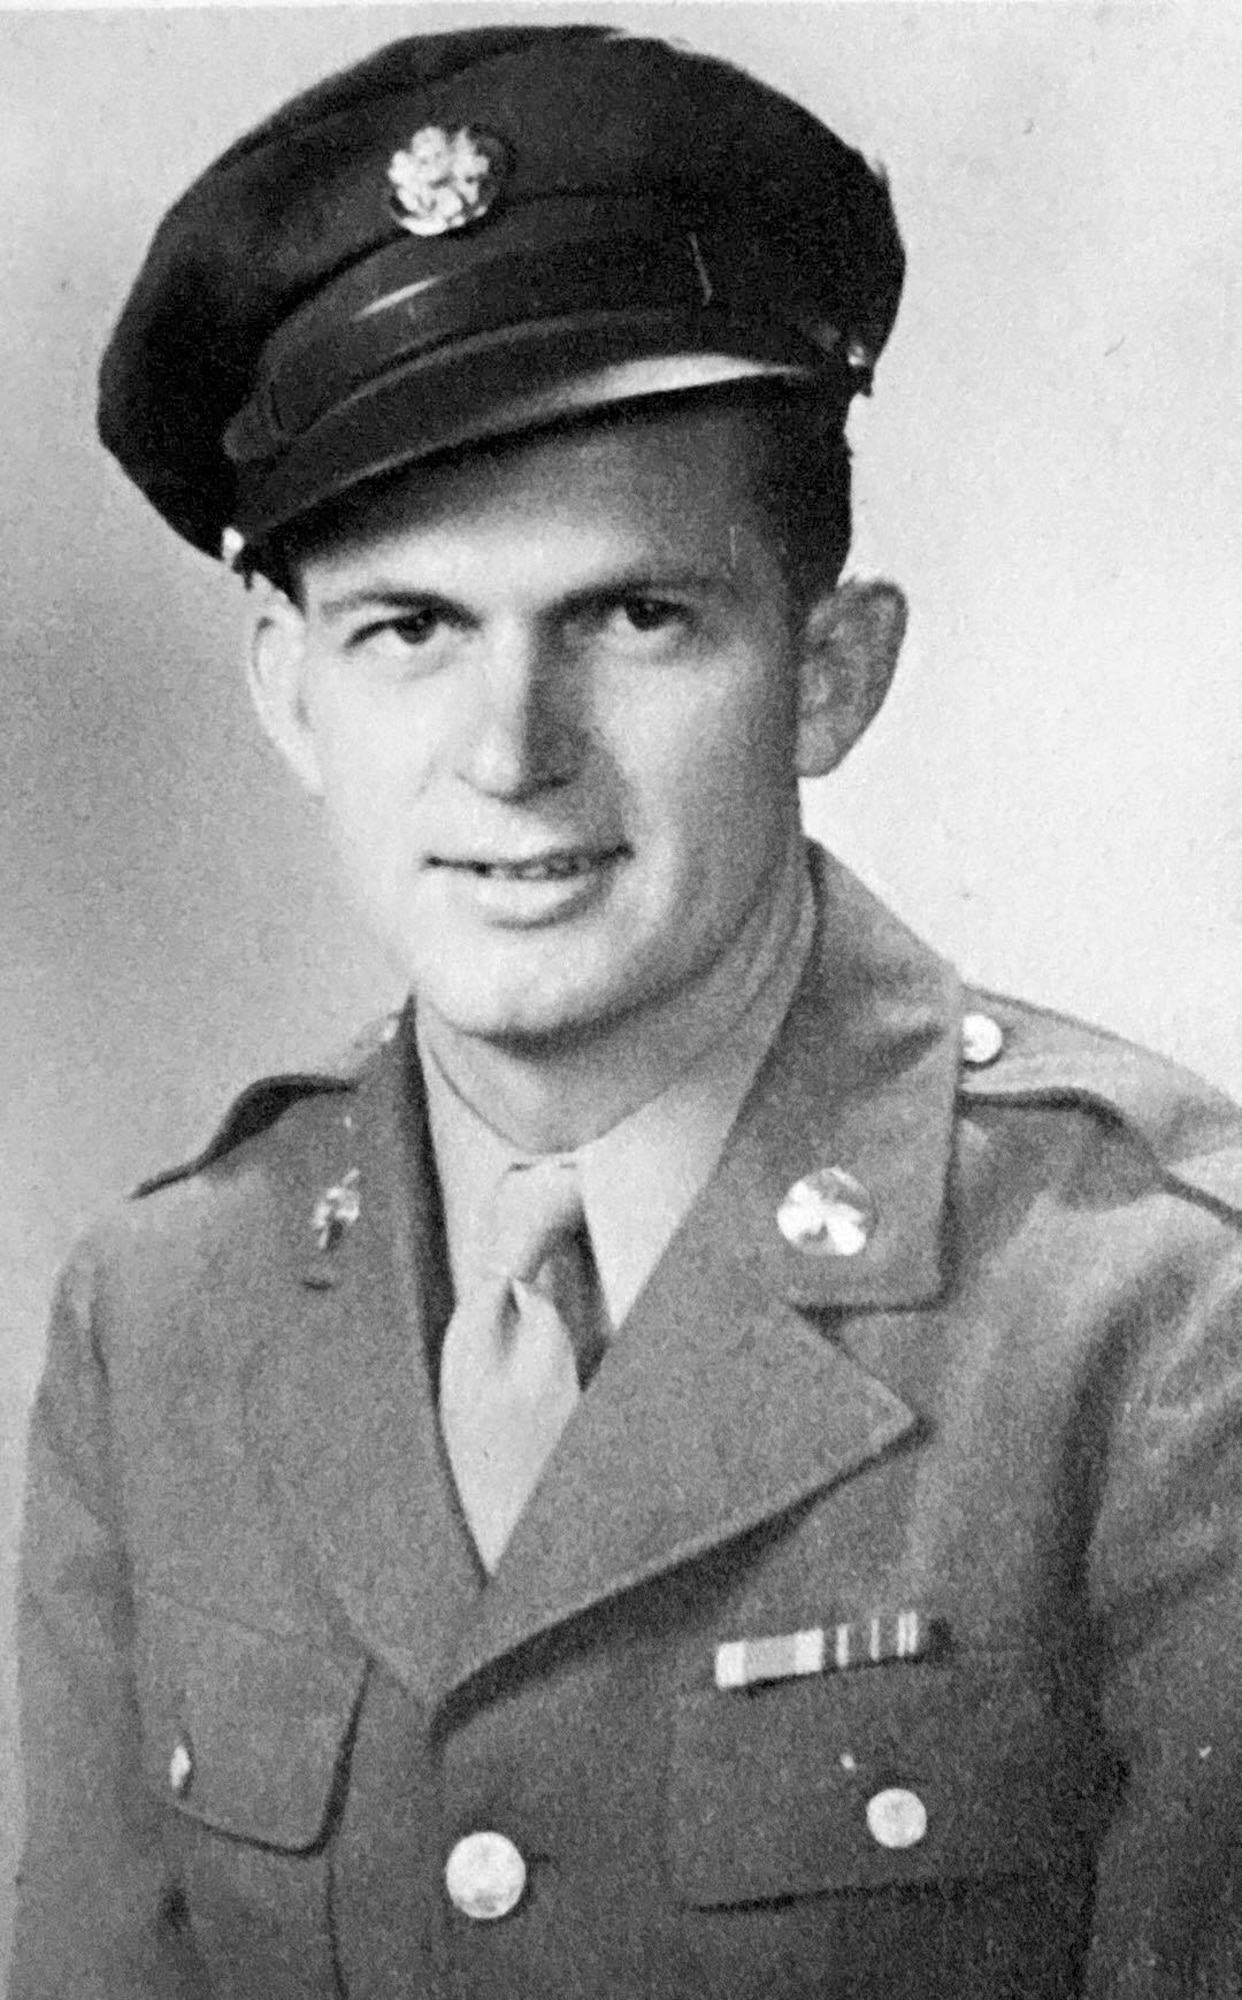 Raymond Odom, U.S. Army Air Forces veteran, joined the service during World War II on Feb. 23, 1943. In early May of 2016, a groundsman from RAF Hontington, England, found a dog tagthat belongied to Odom while metal detecting on what use to be known as RAF Knettishall, England. The tags are being returned to their rightful owner. (Courtesy photo)